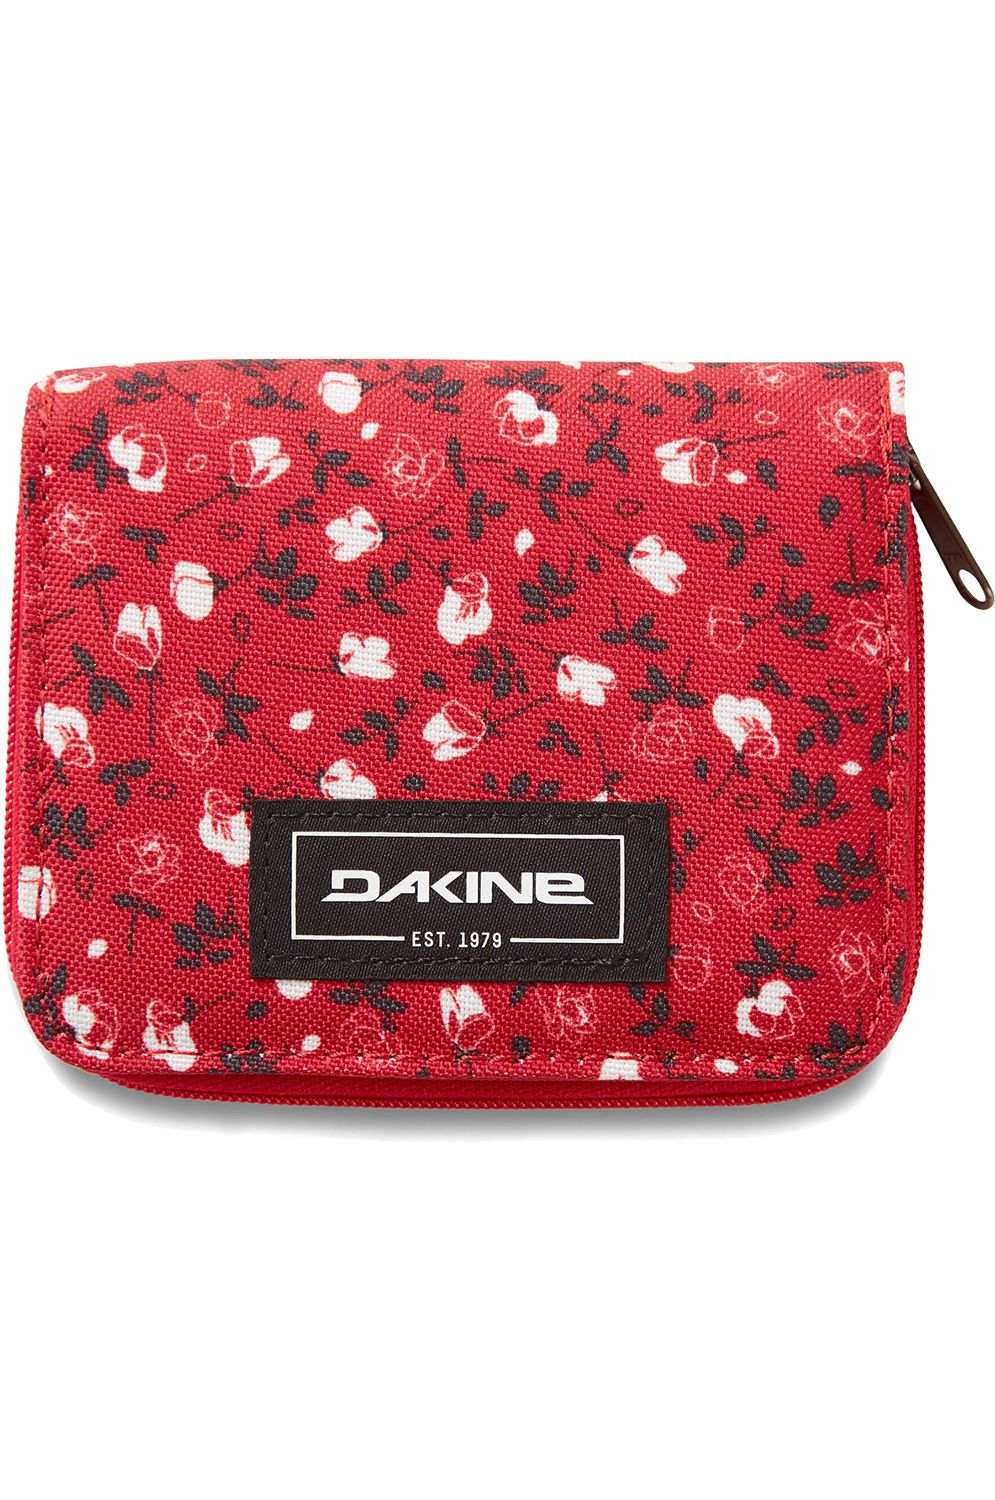 Carteira Dakine SOHO Crimson Rose